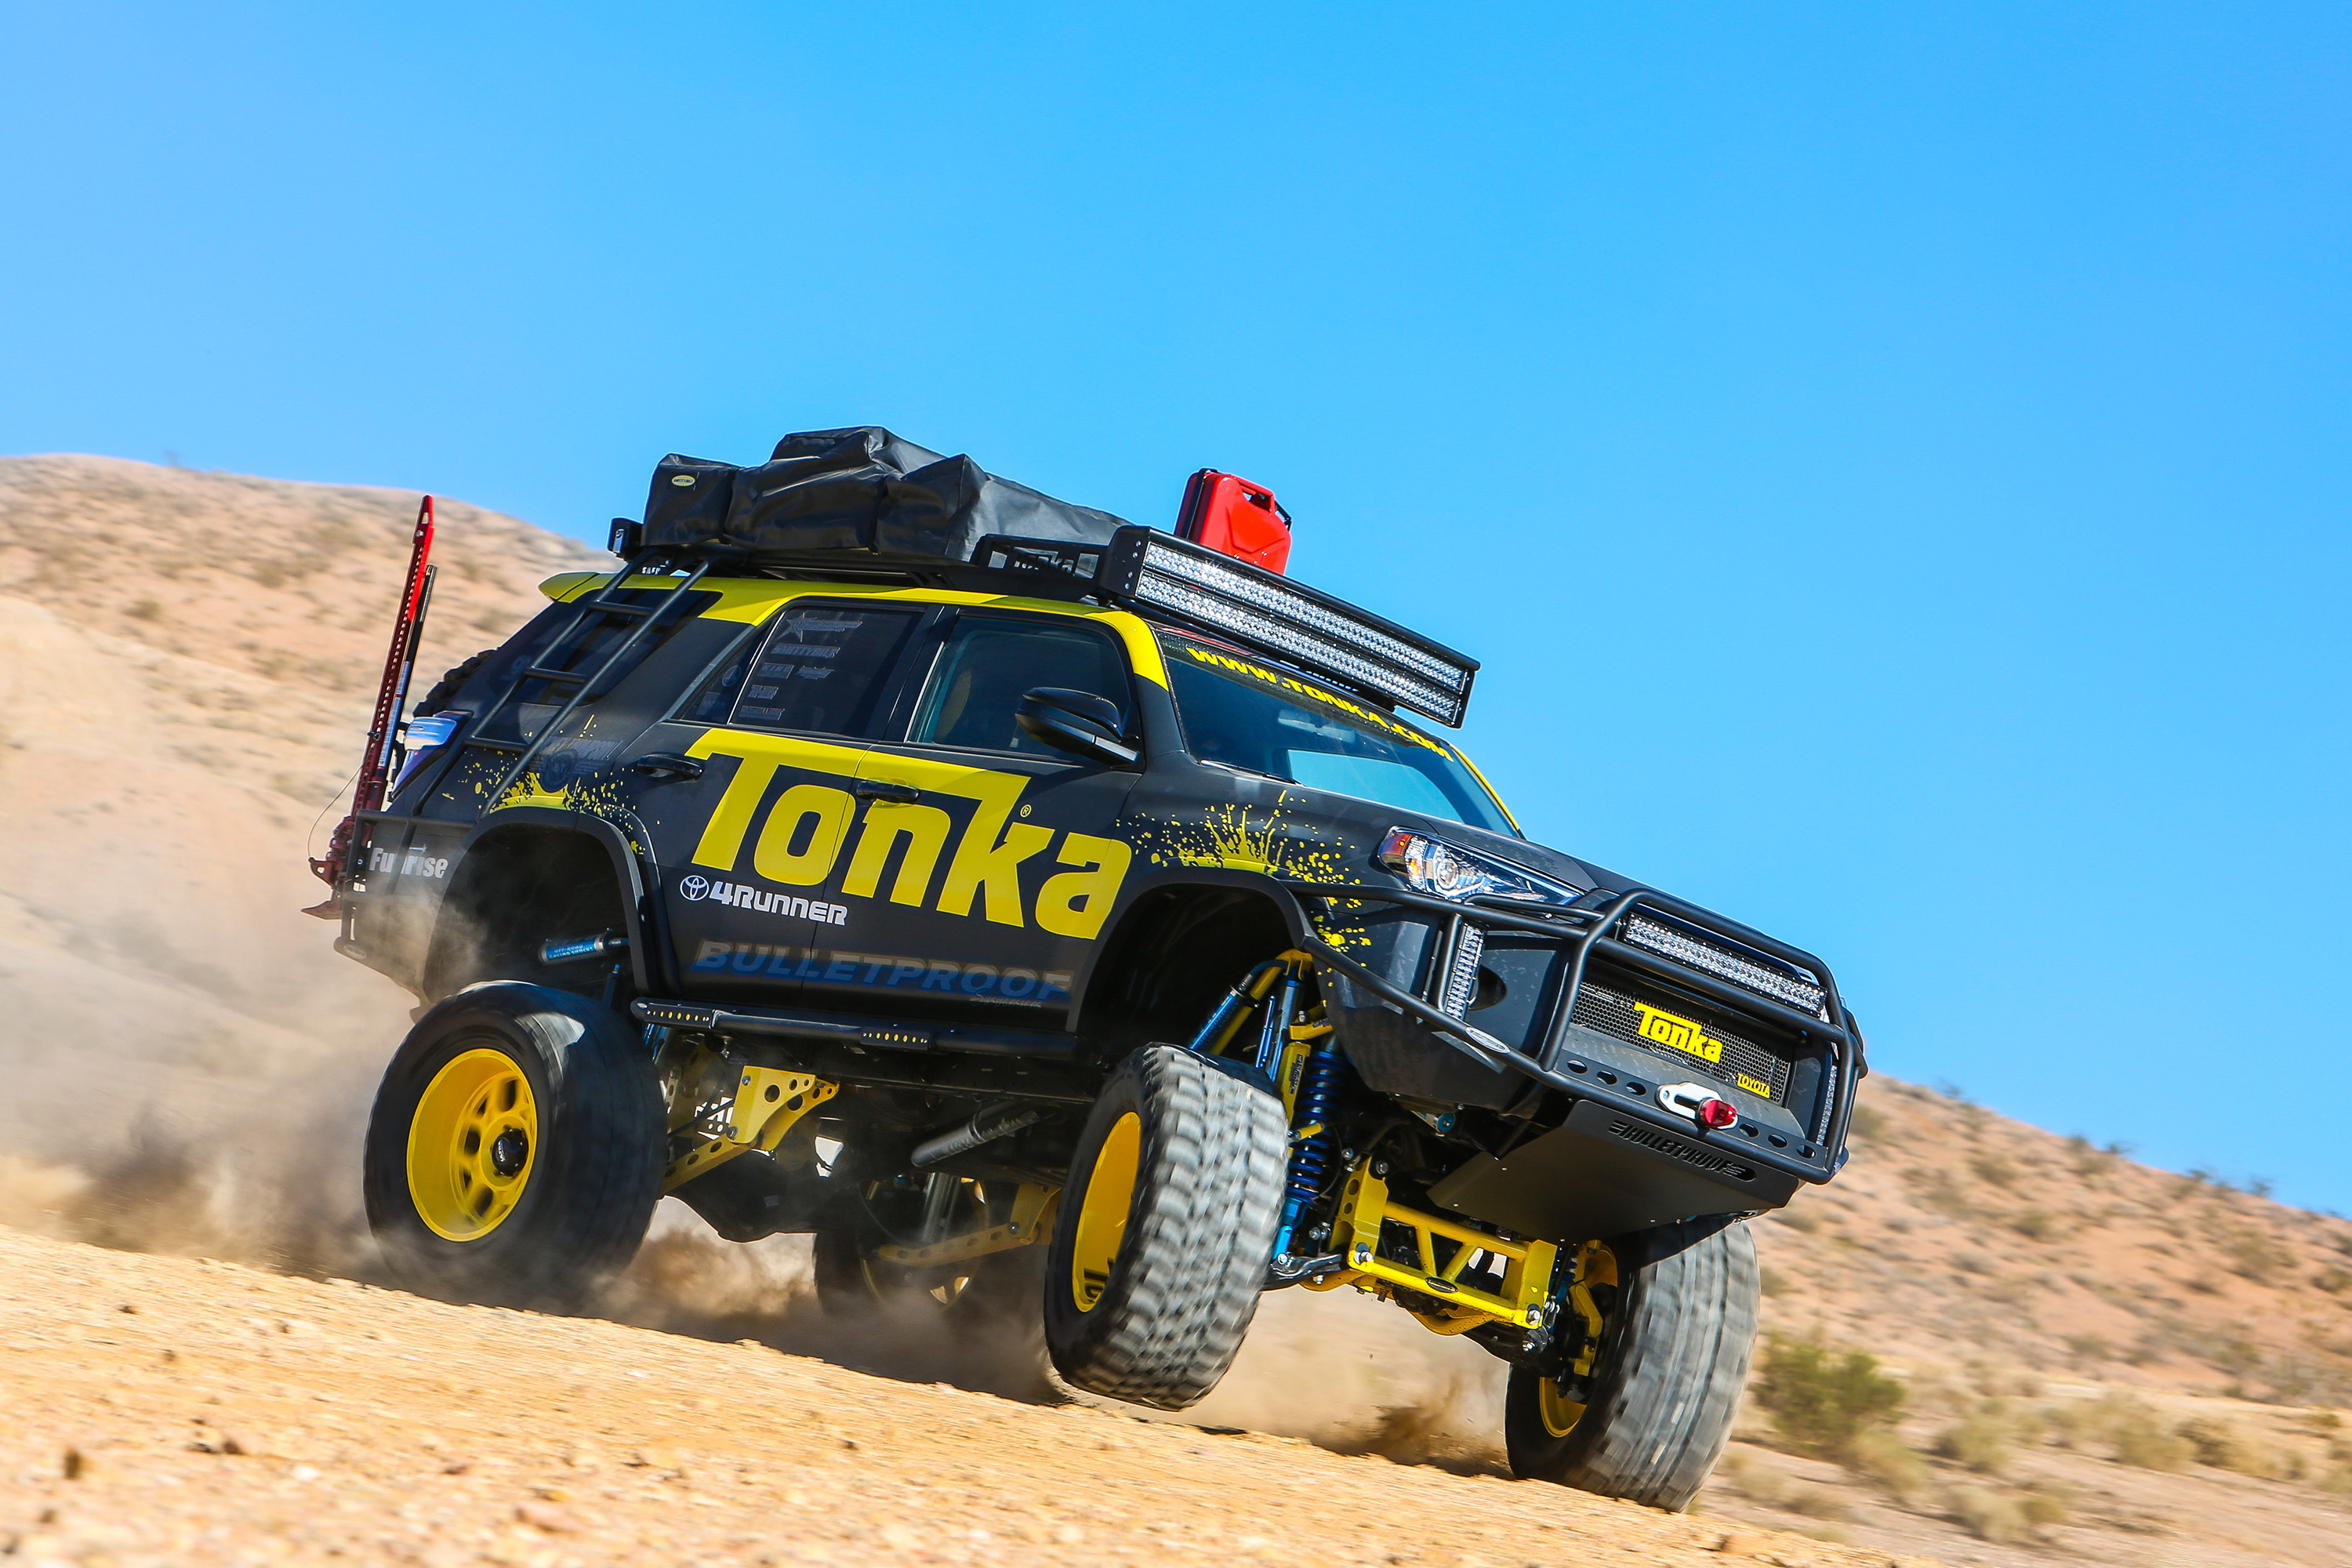 4runner Tonka Trucks Stretch Tundras And Souped Up Vans